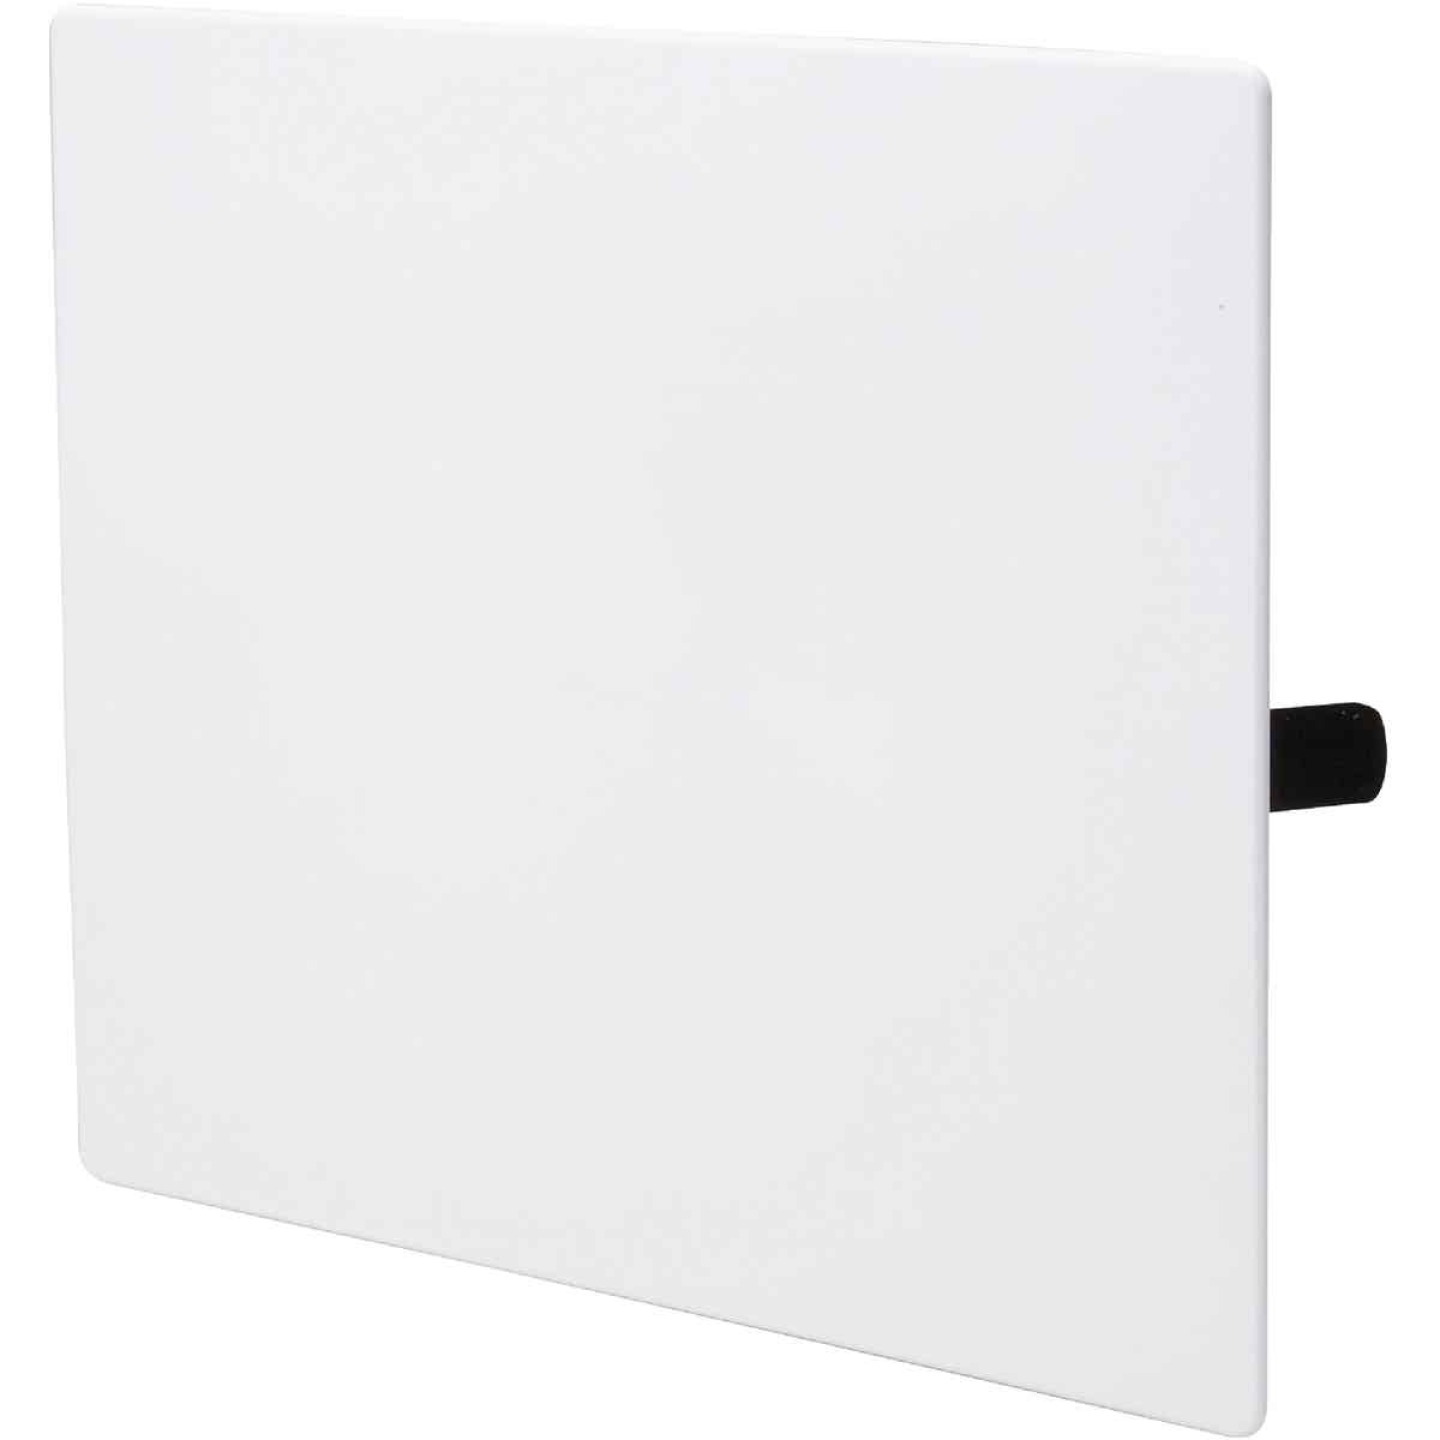 B&K 10 In. x 10 In. White Plastic Wall Access Panel Image 1